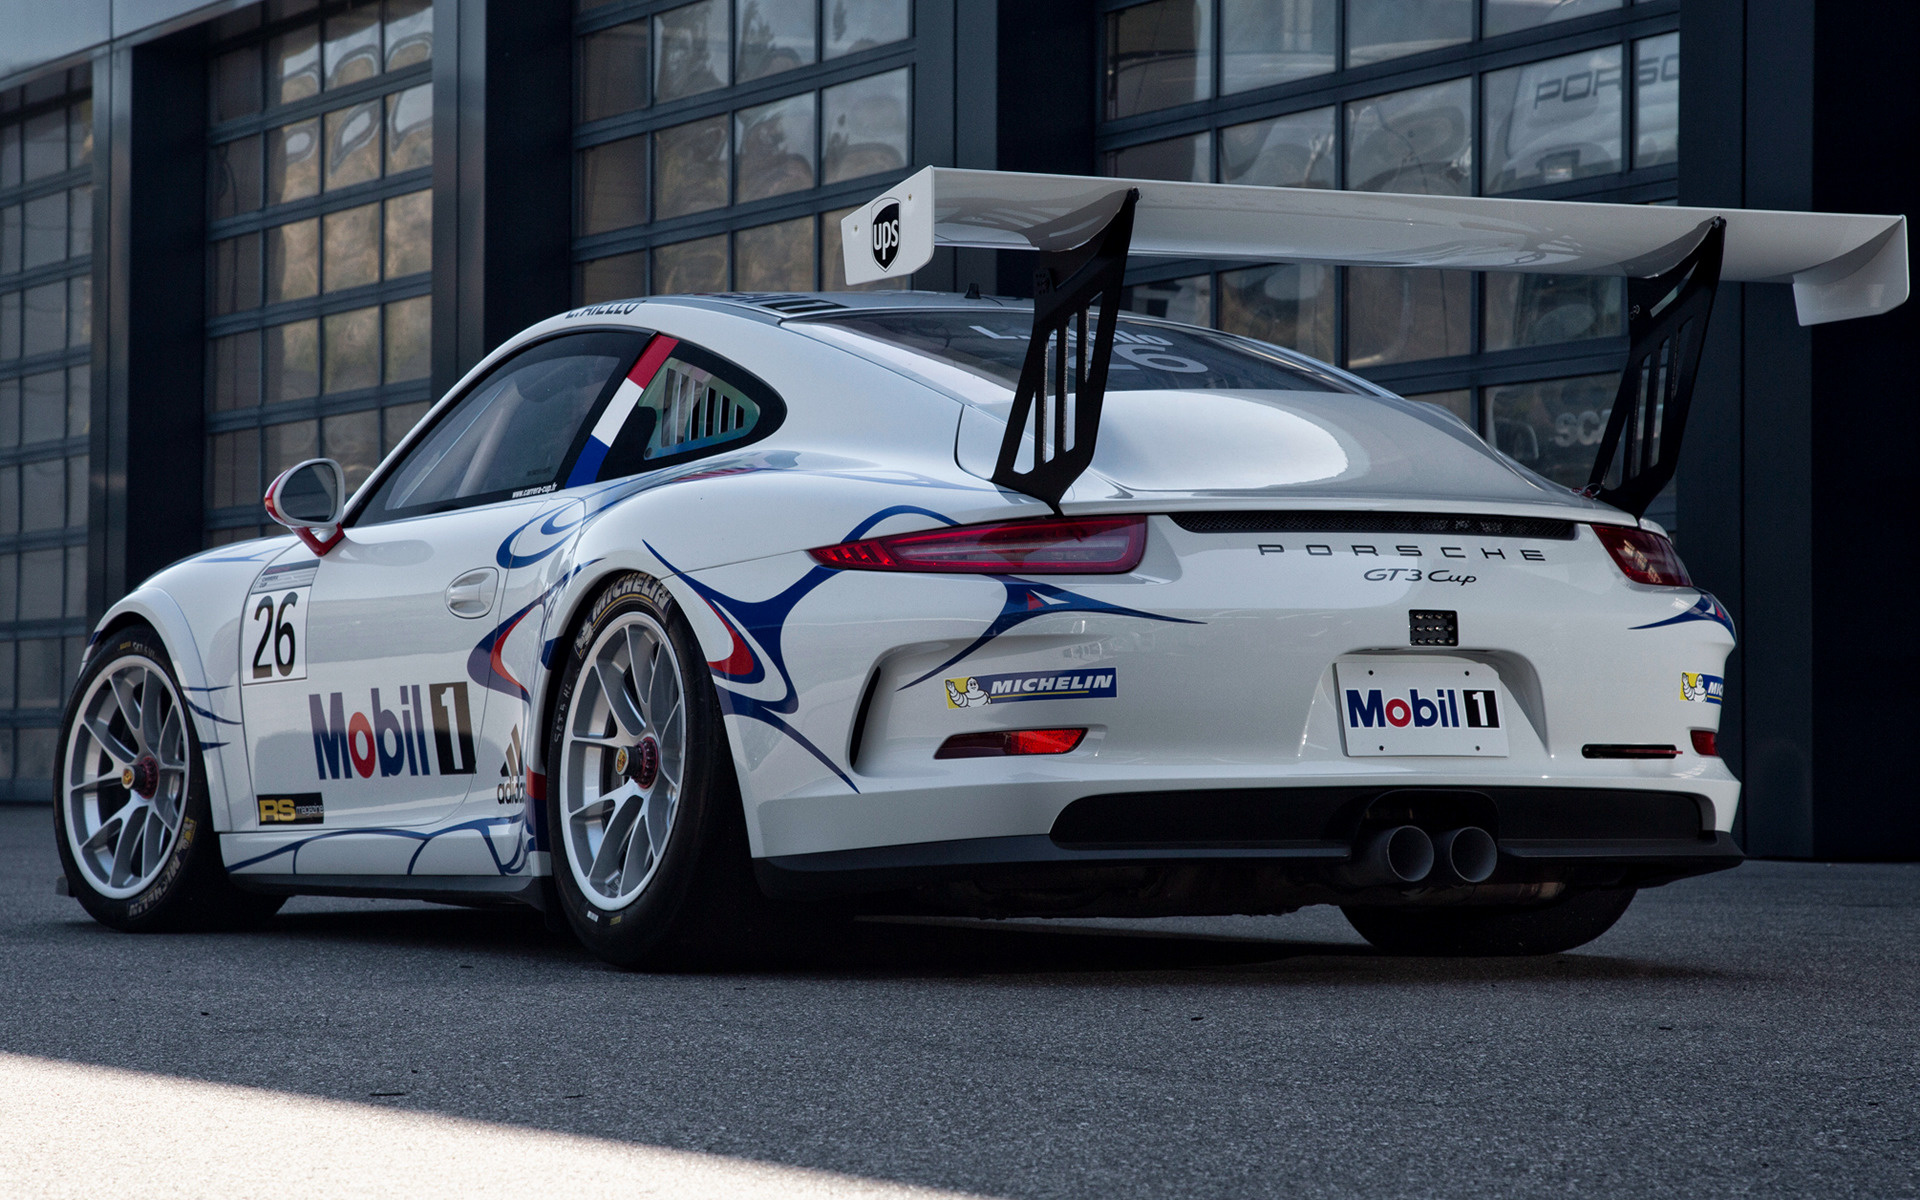 2013 Porsche 911 Gt3 Cup Wallpapers And Hd Images Car